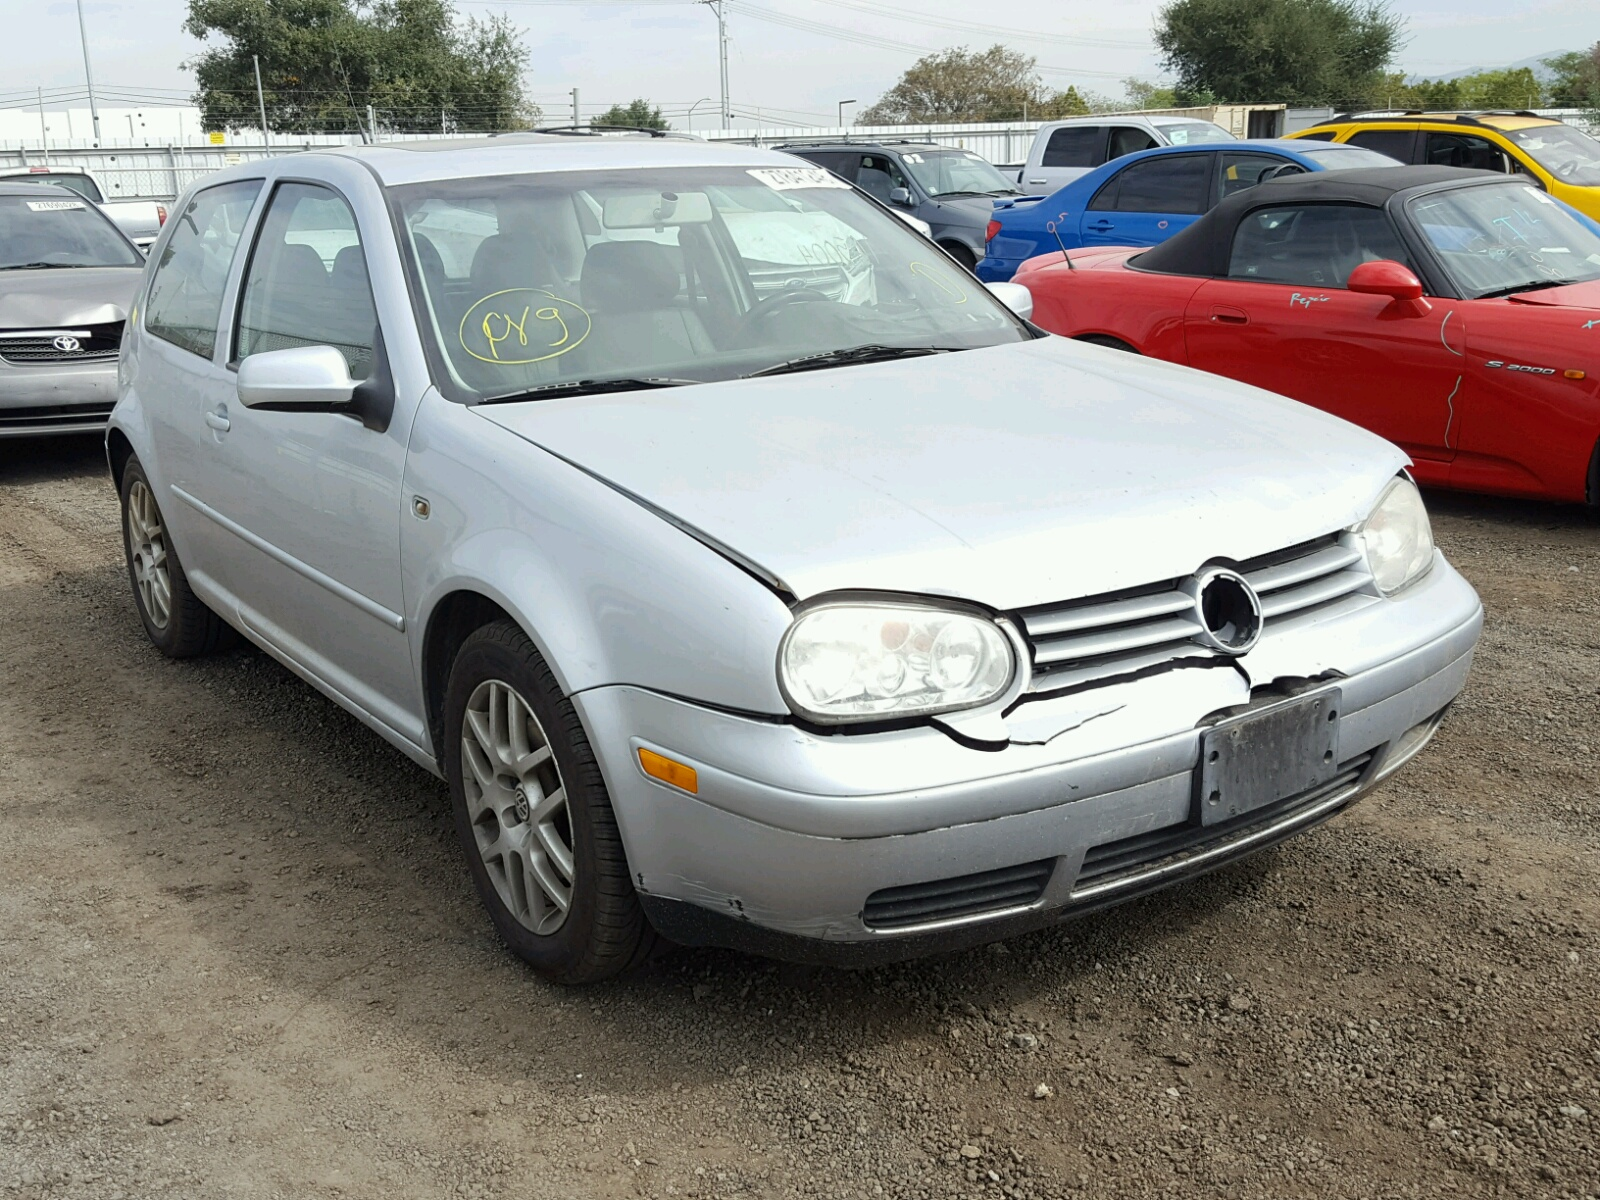 online view auctions salvage en black copart san left lot ca in diego sale se certificate volkswagen jetta on auto carfinder